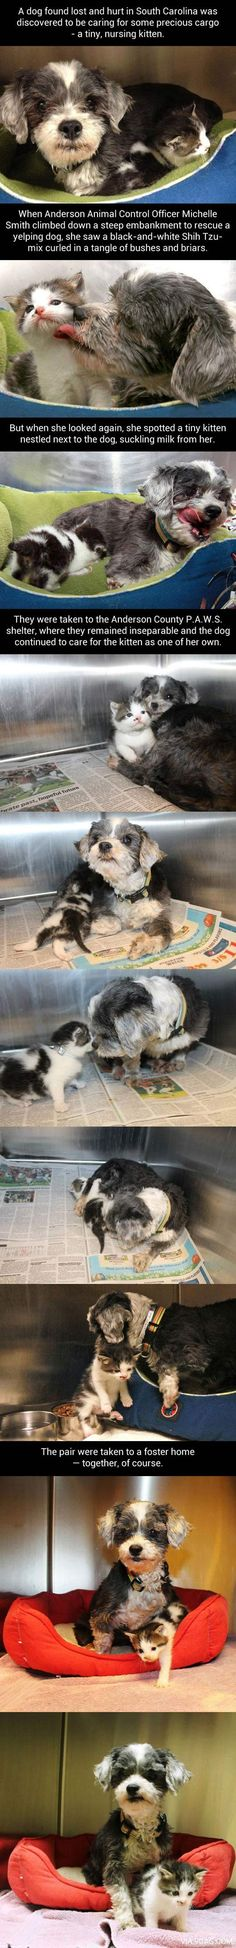 Rescued dog rescued kitten so adorable how could anyone want to hurt such loving animals. Amazing, strong bond of love!